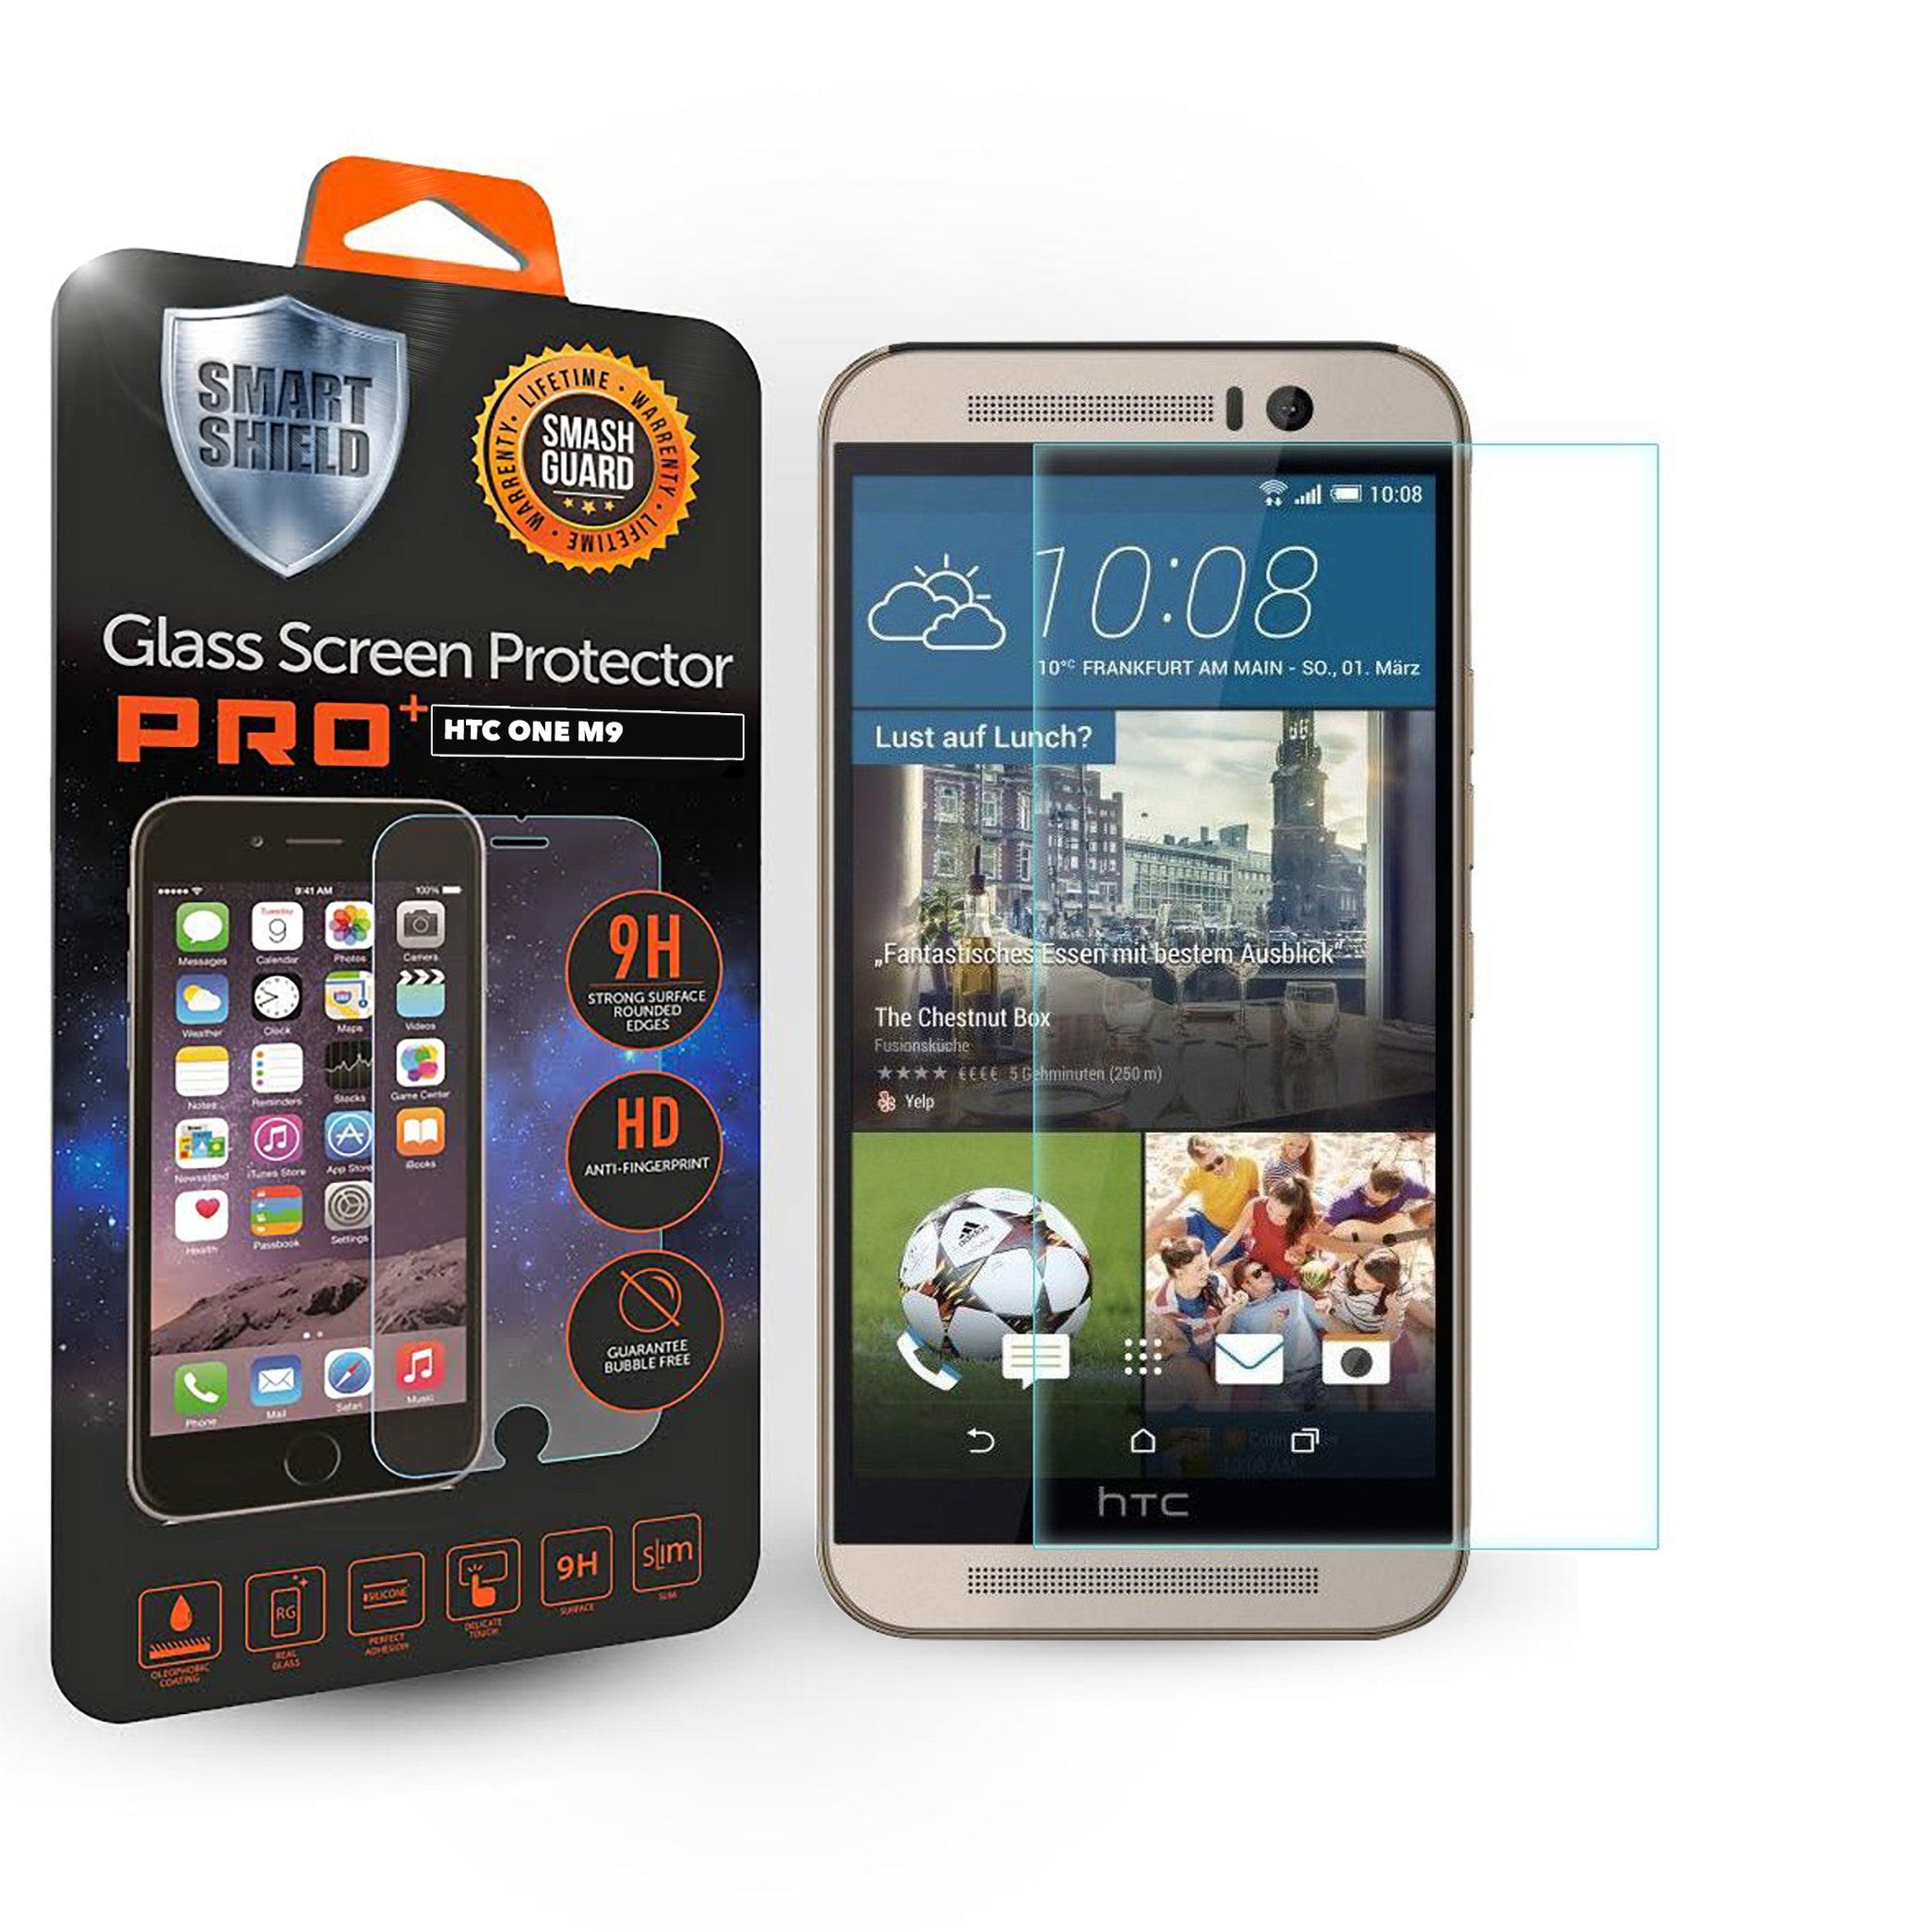 HTC One M9 Tempered Glass Screen Protector - Smart Shield - 1